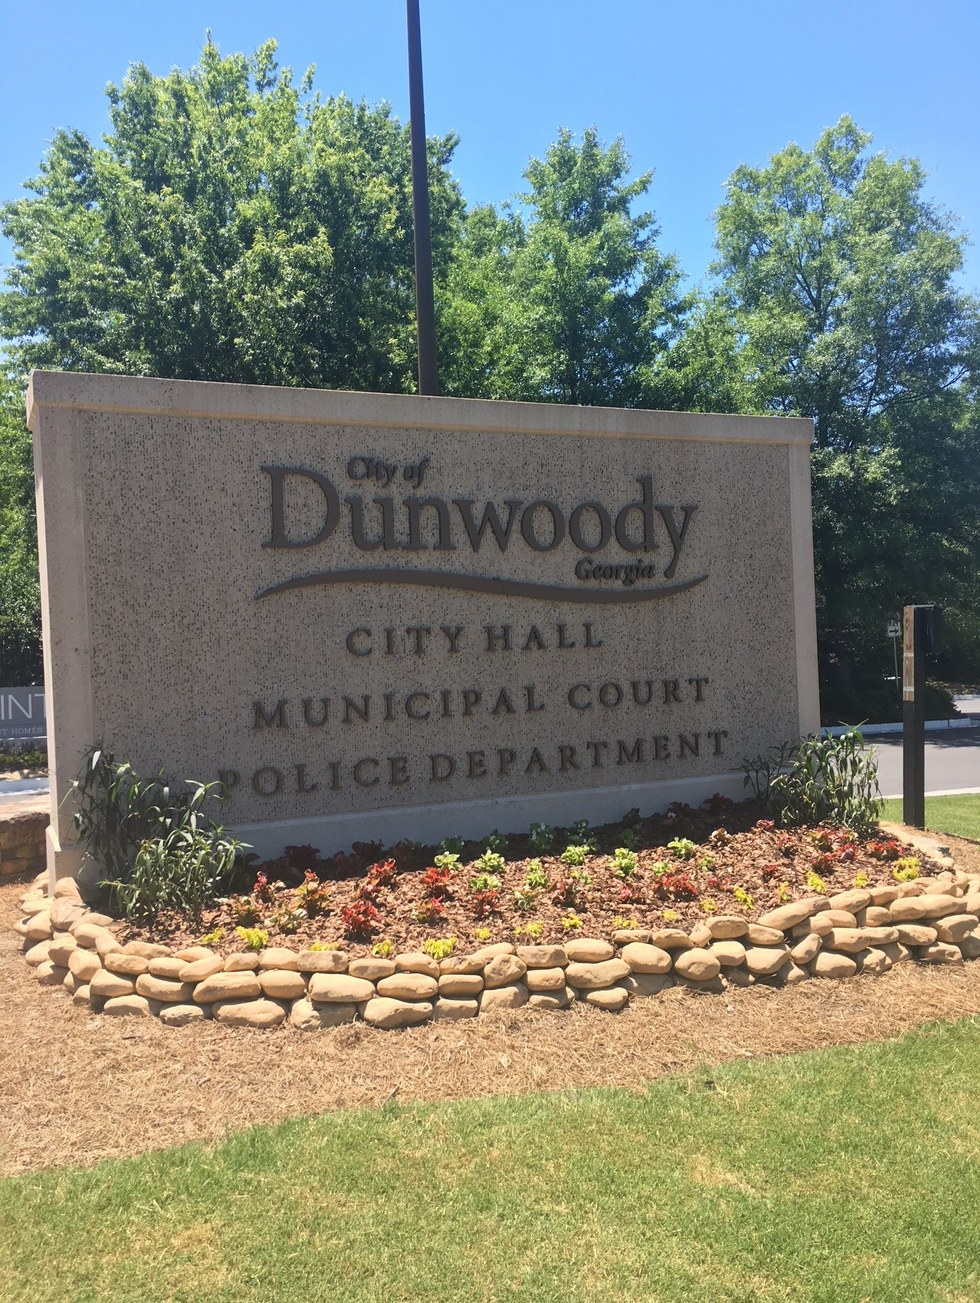 City of dunwoody sign for government building